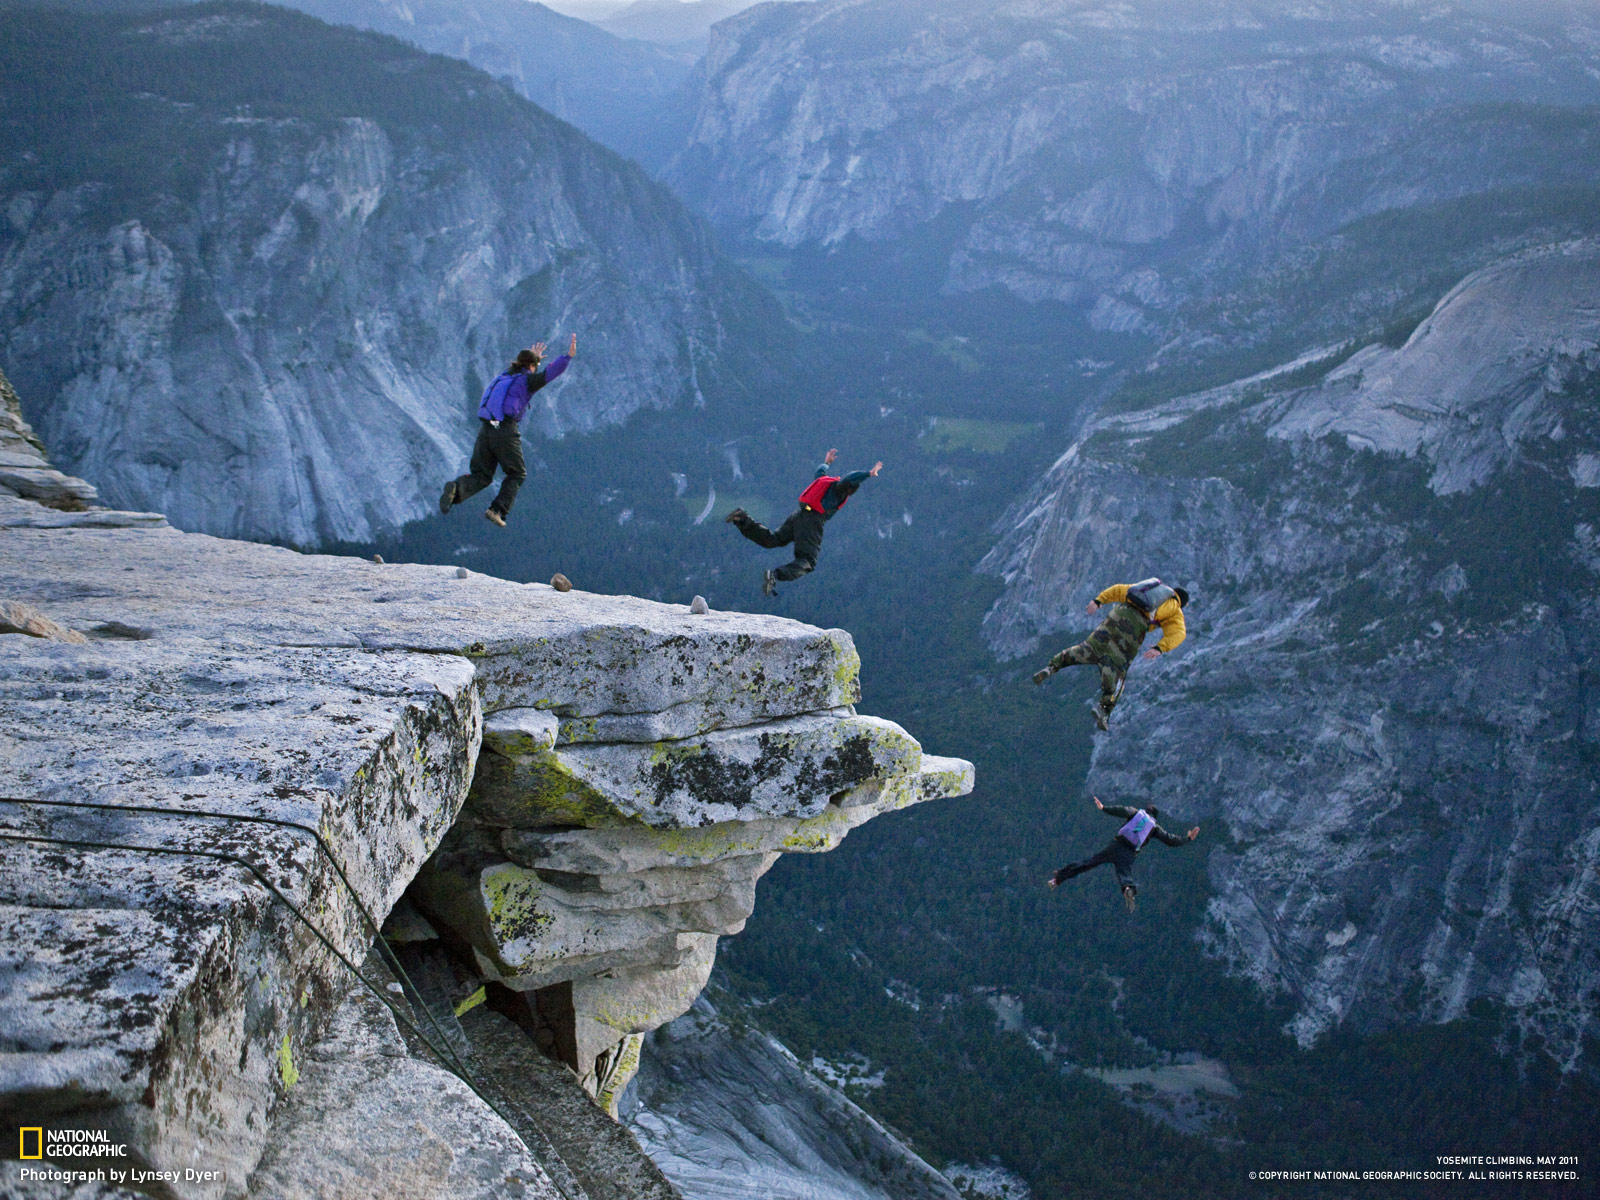 http://3.bp.blogspot.com/-_x34ZnEEi3g/TvmrrfxG84I/AAAAAAAACsY/WkBb-tNmrp0/s1600/may11wallpaper-2_1600-yosemite-base-jumping.jpg